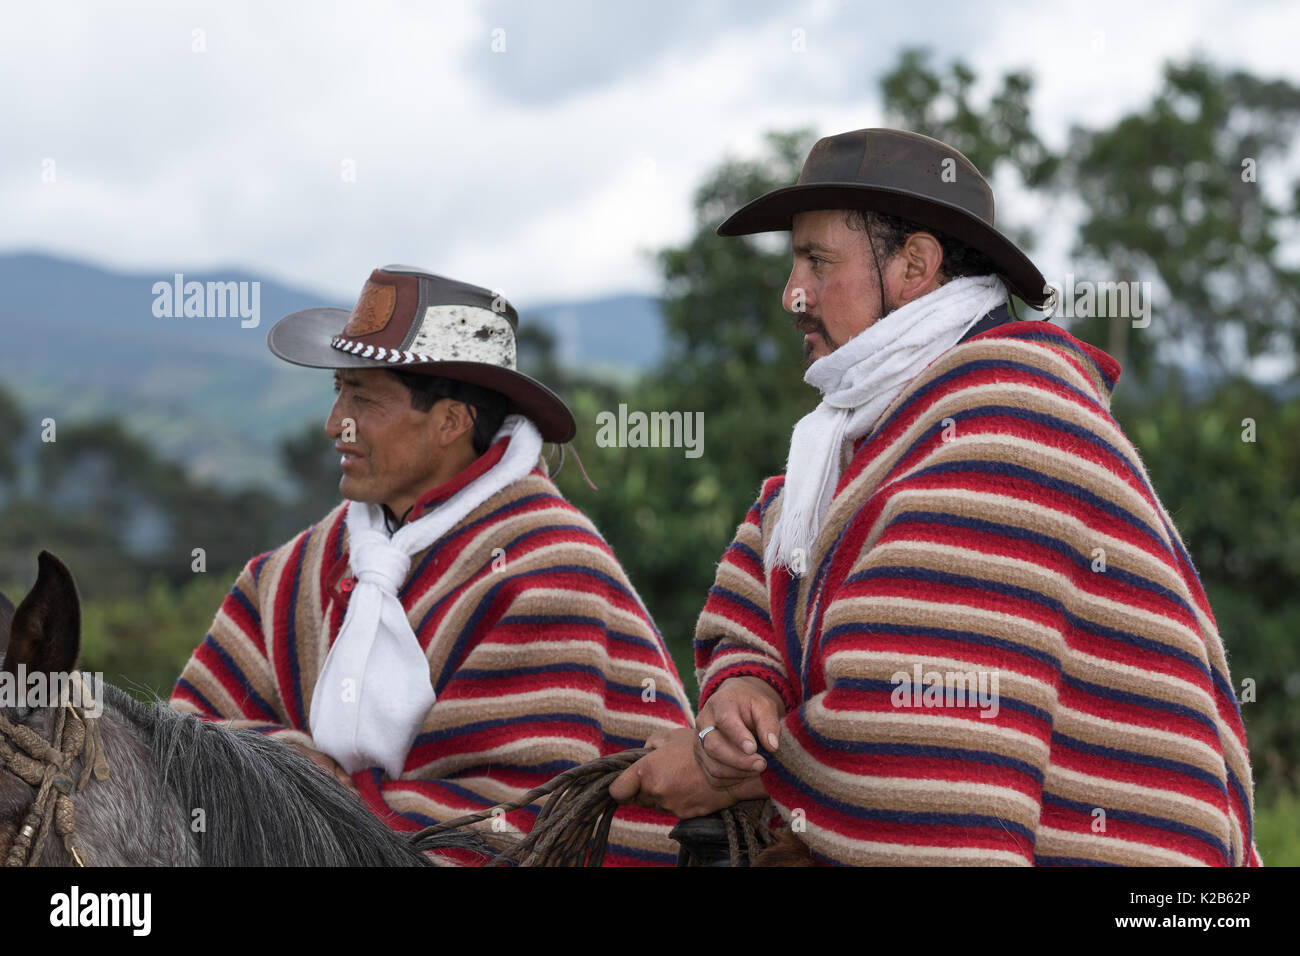 June 3, 2017 Machachi, Ecuador: cowboys in traditional wear on horseback in the Andes - Stock Image